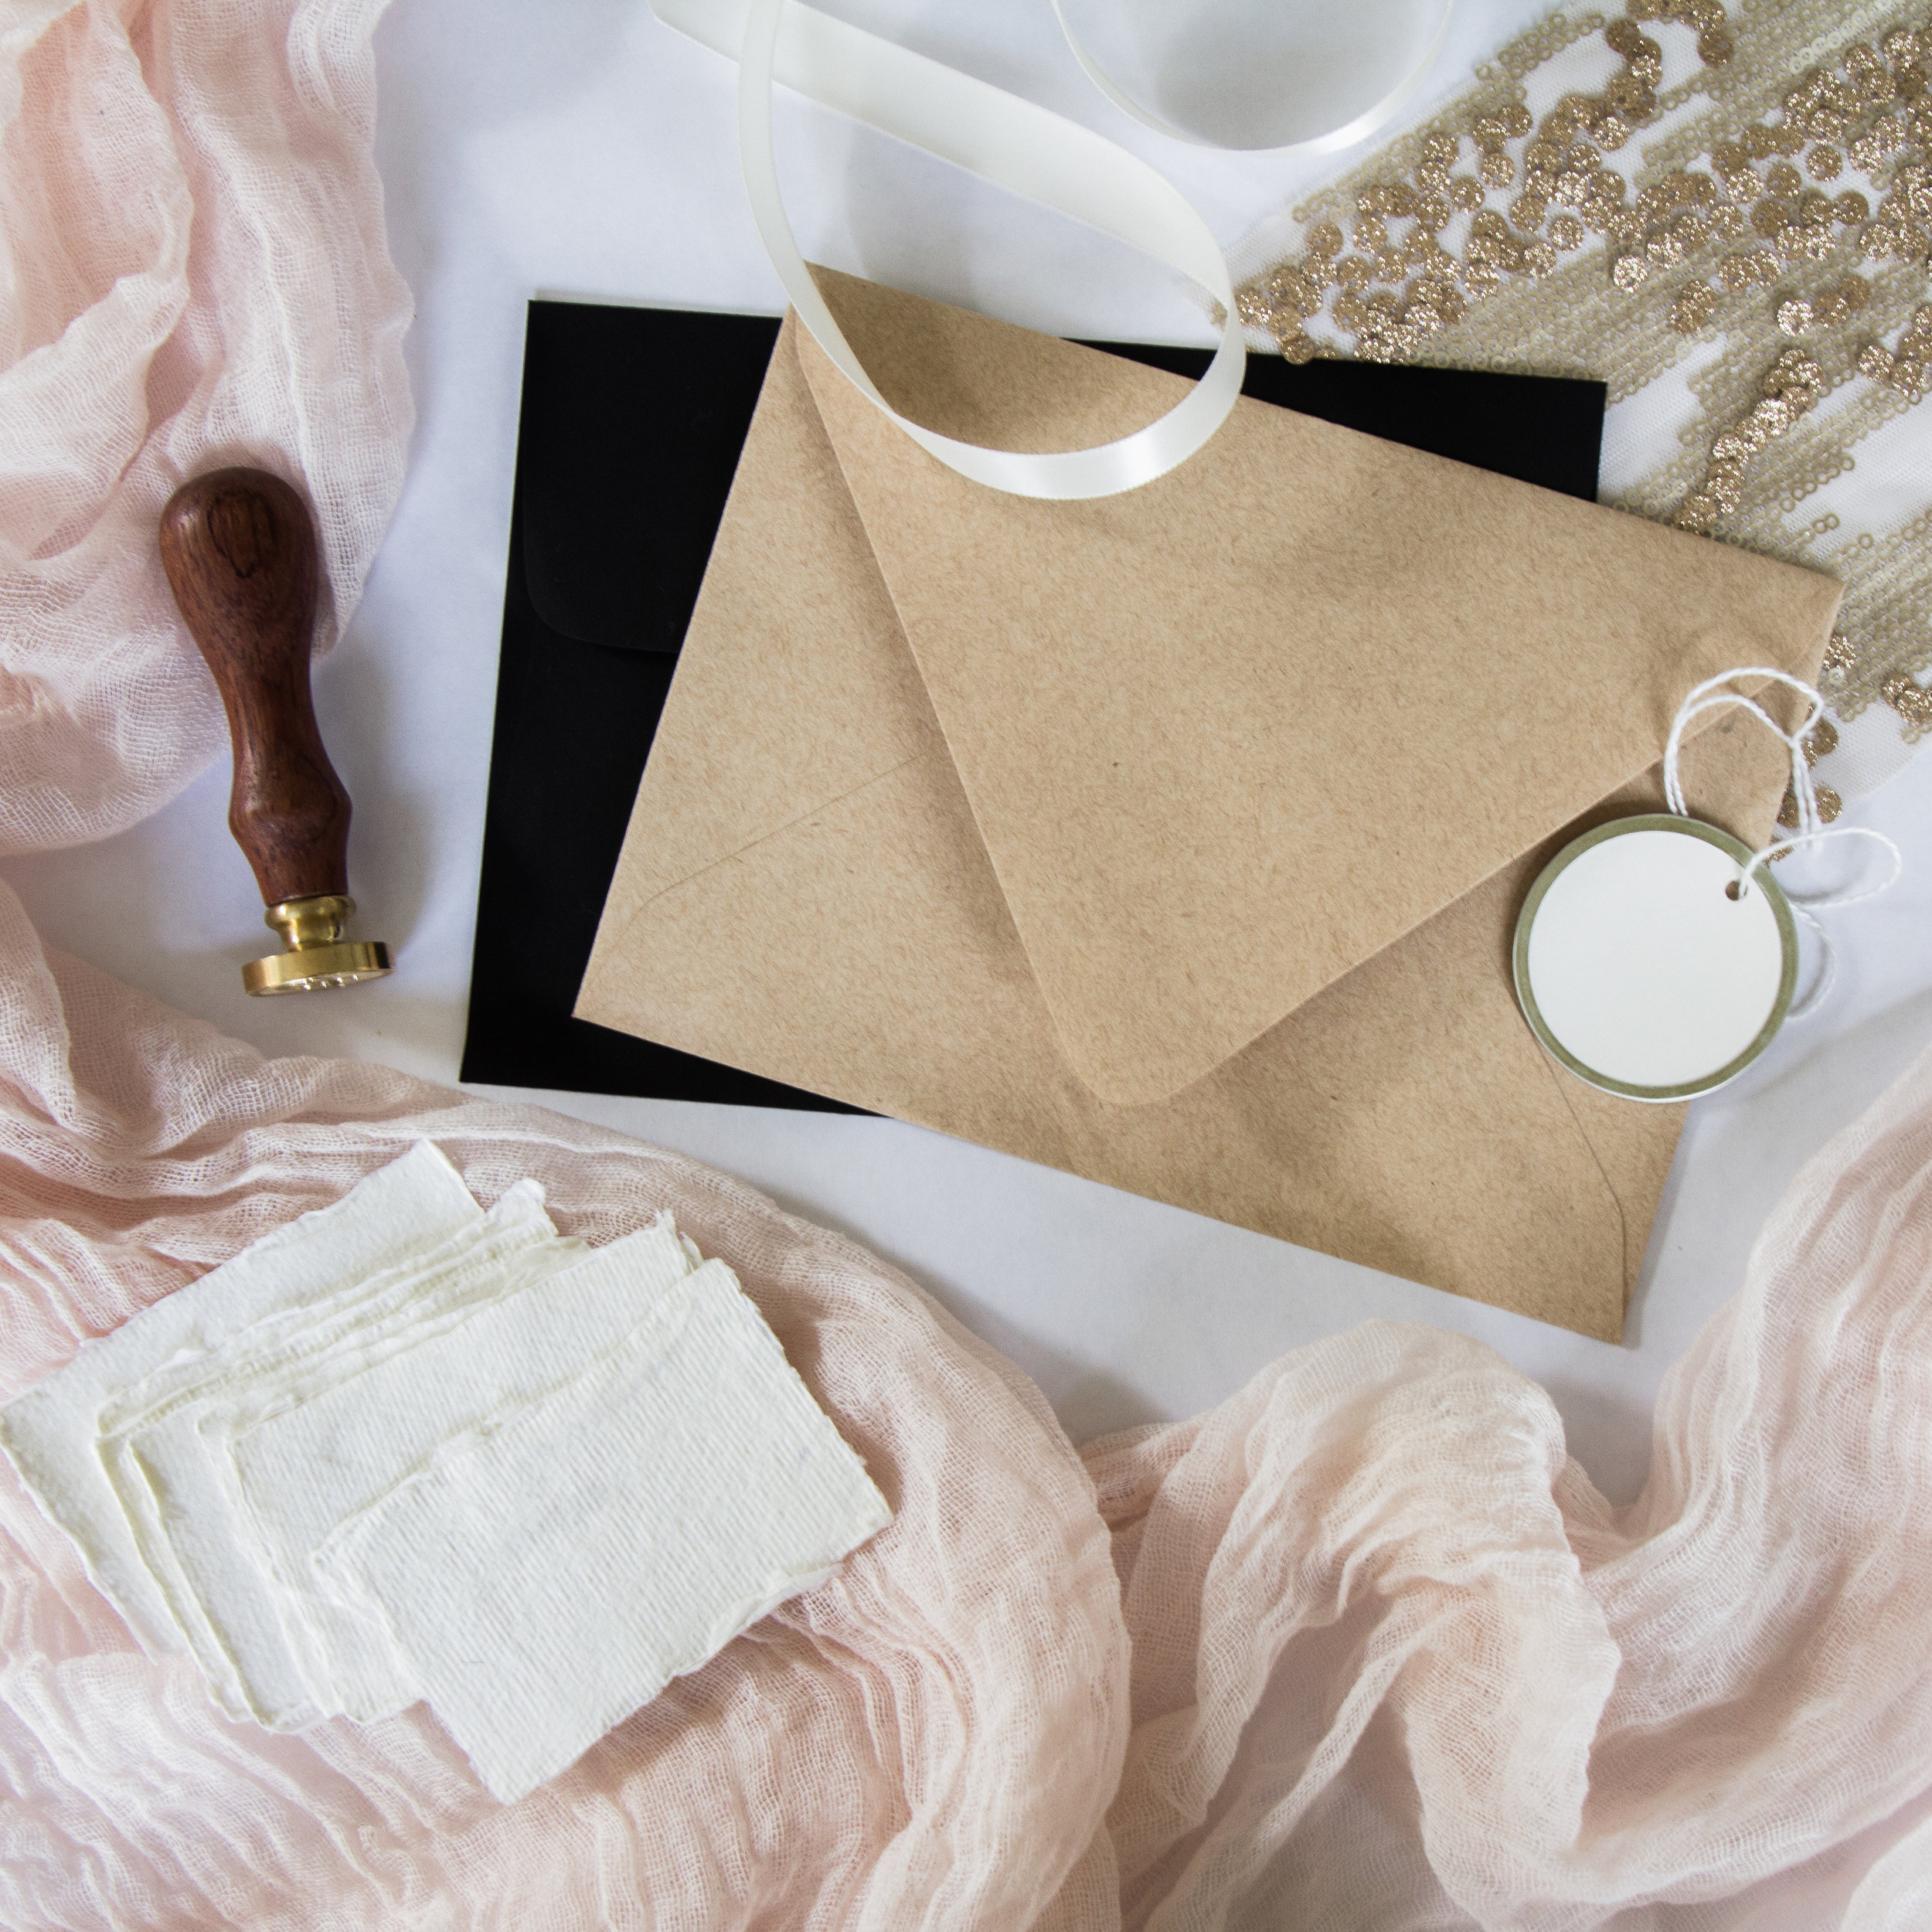 Blush pink cheesecloth with kraft paper A7 envelope, black invitation envelope, round hang tag, wax seal, deckled place card.